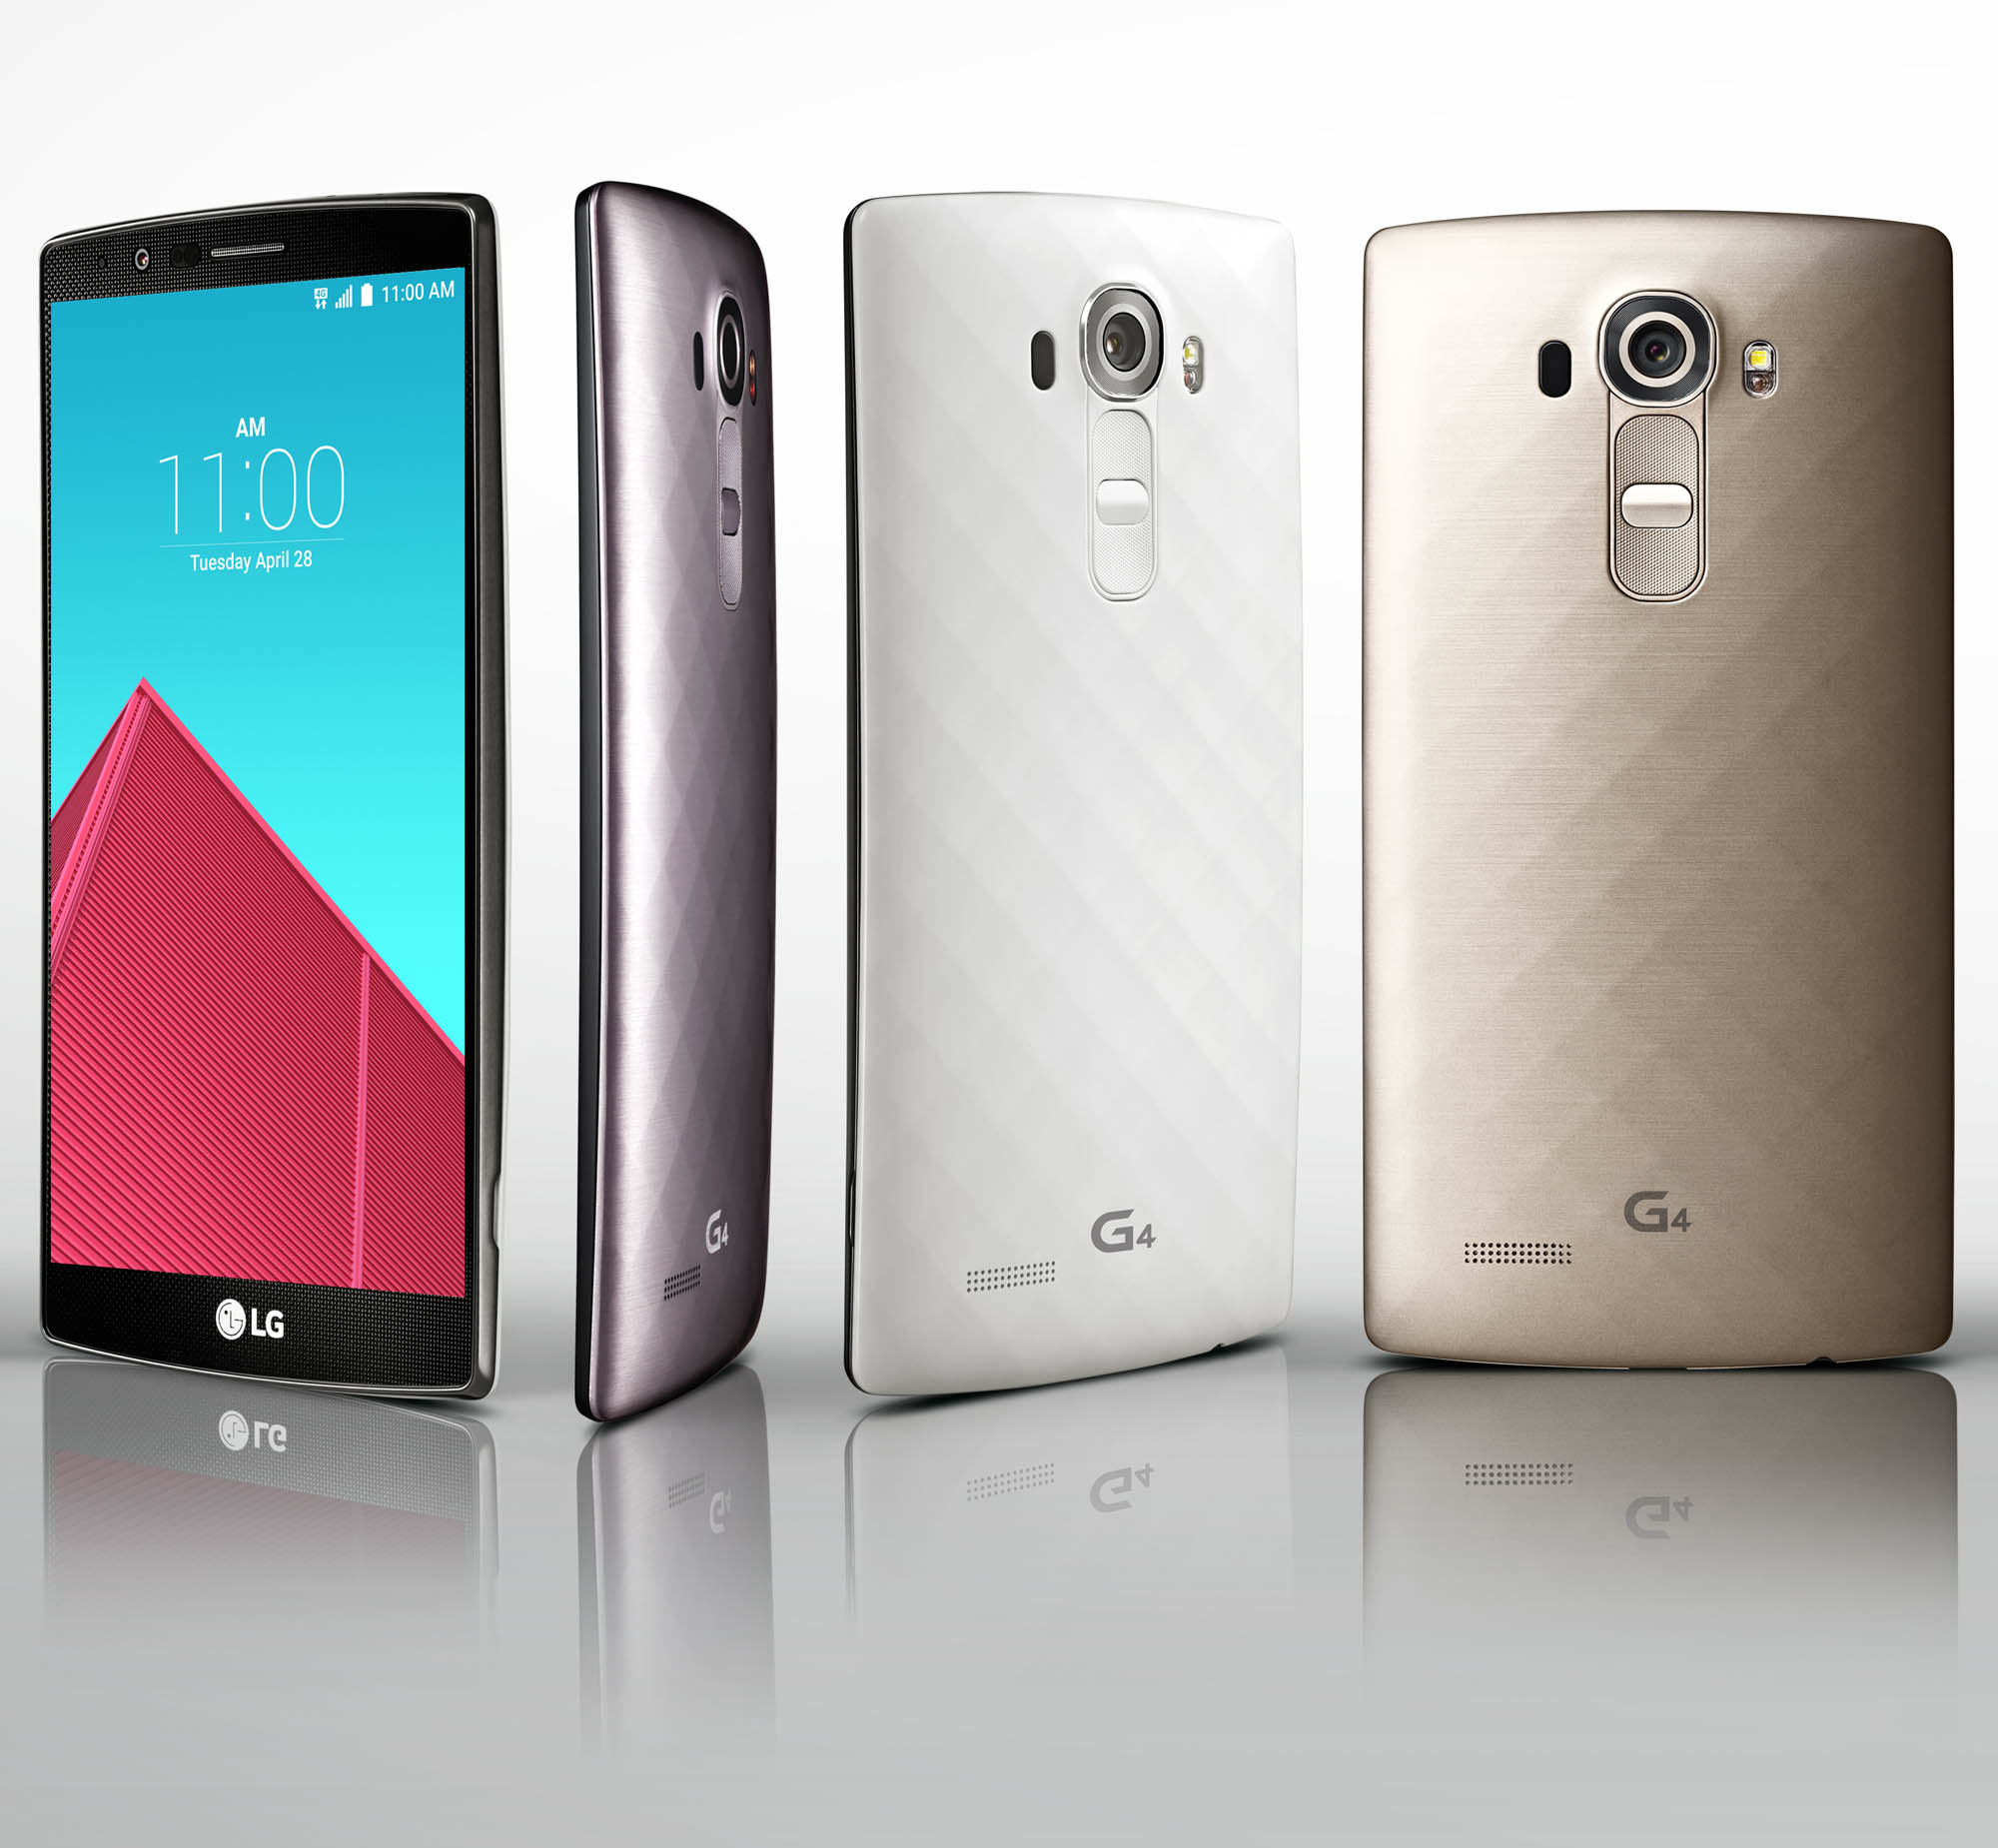 lg g4 official images 1